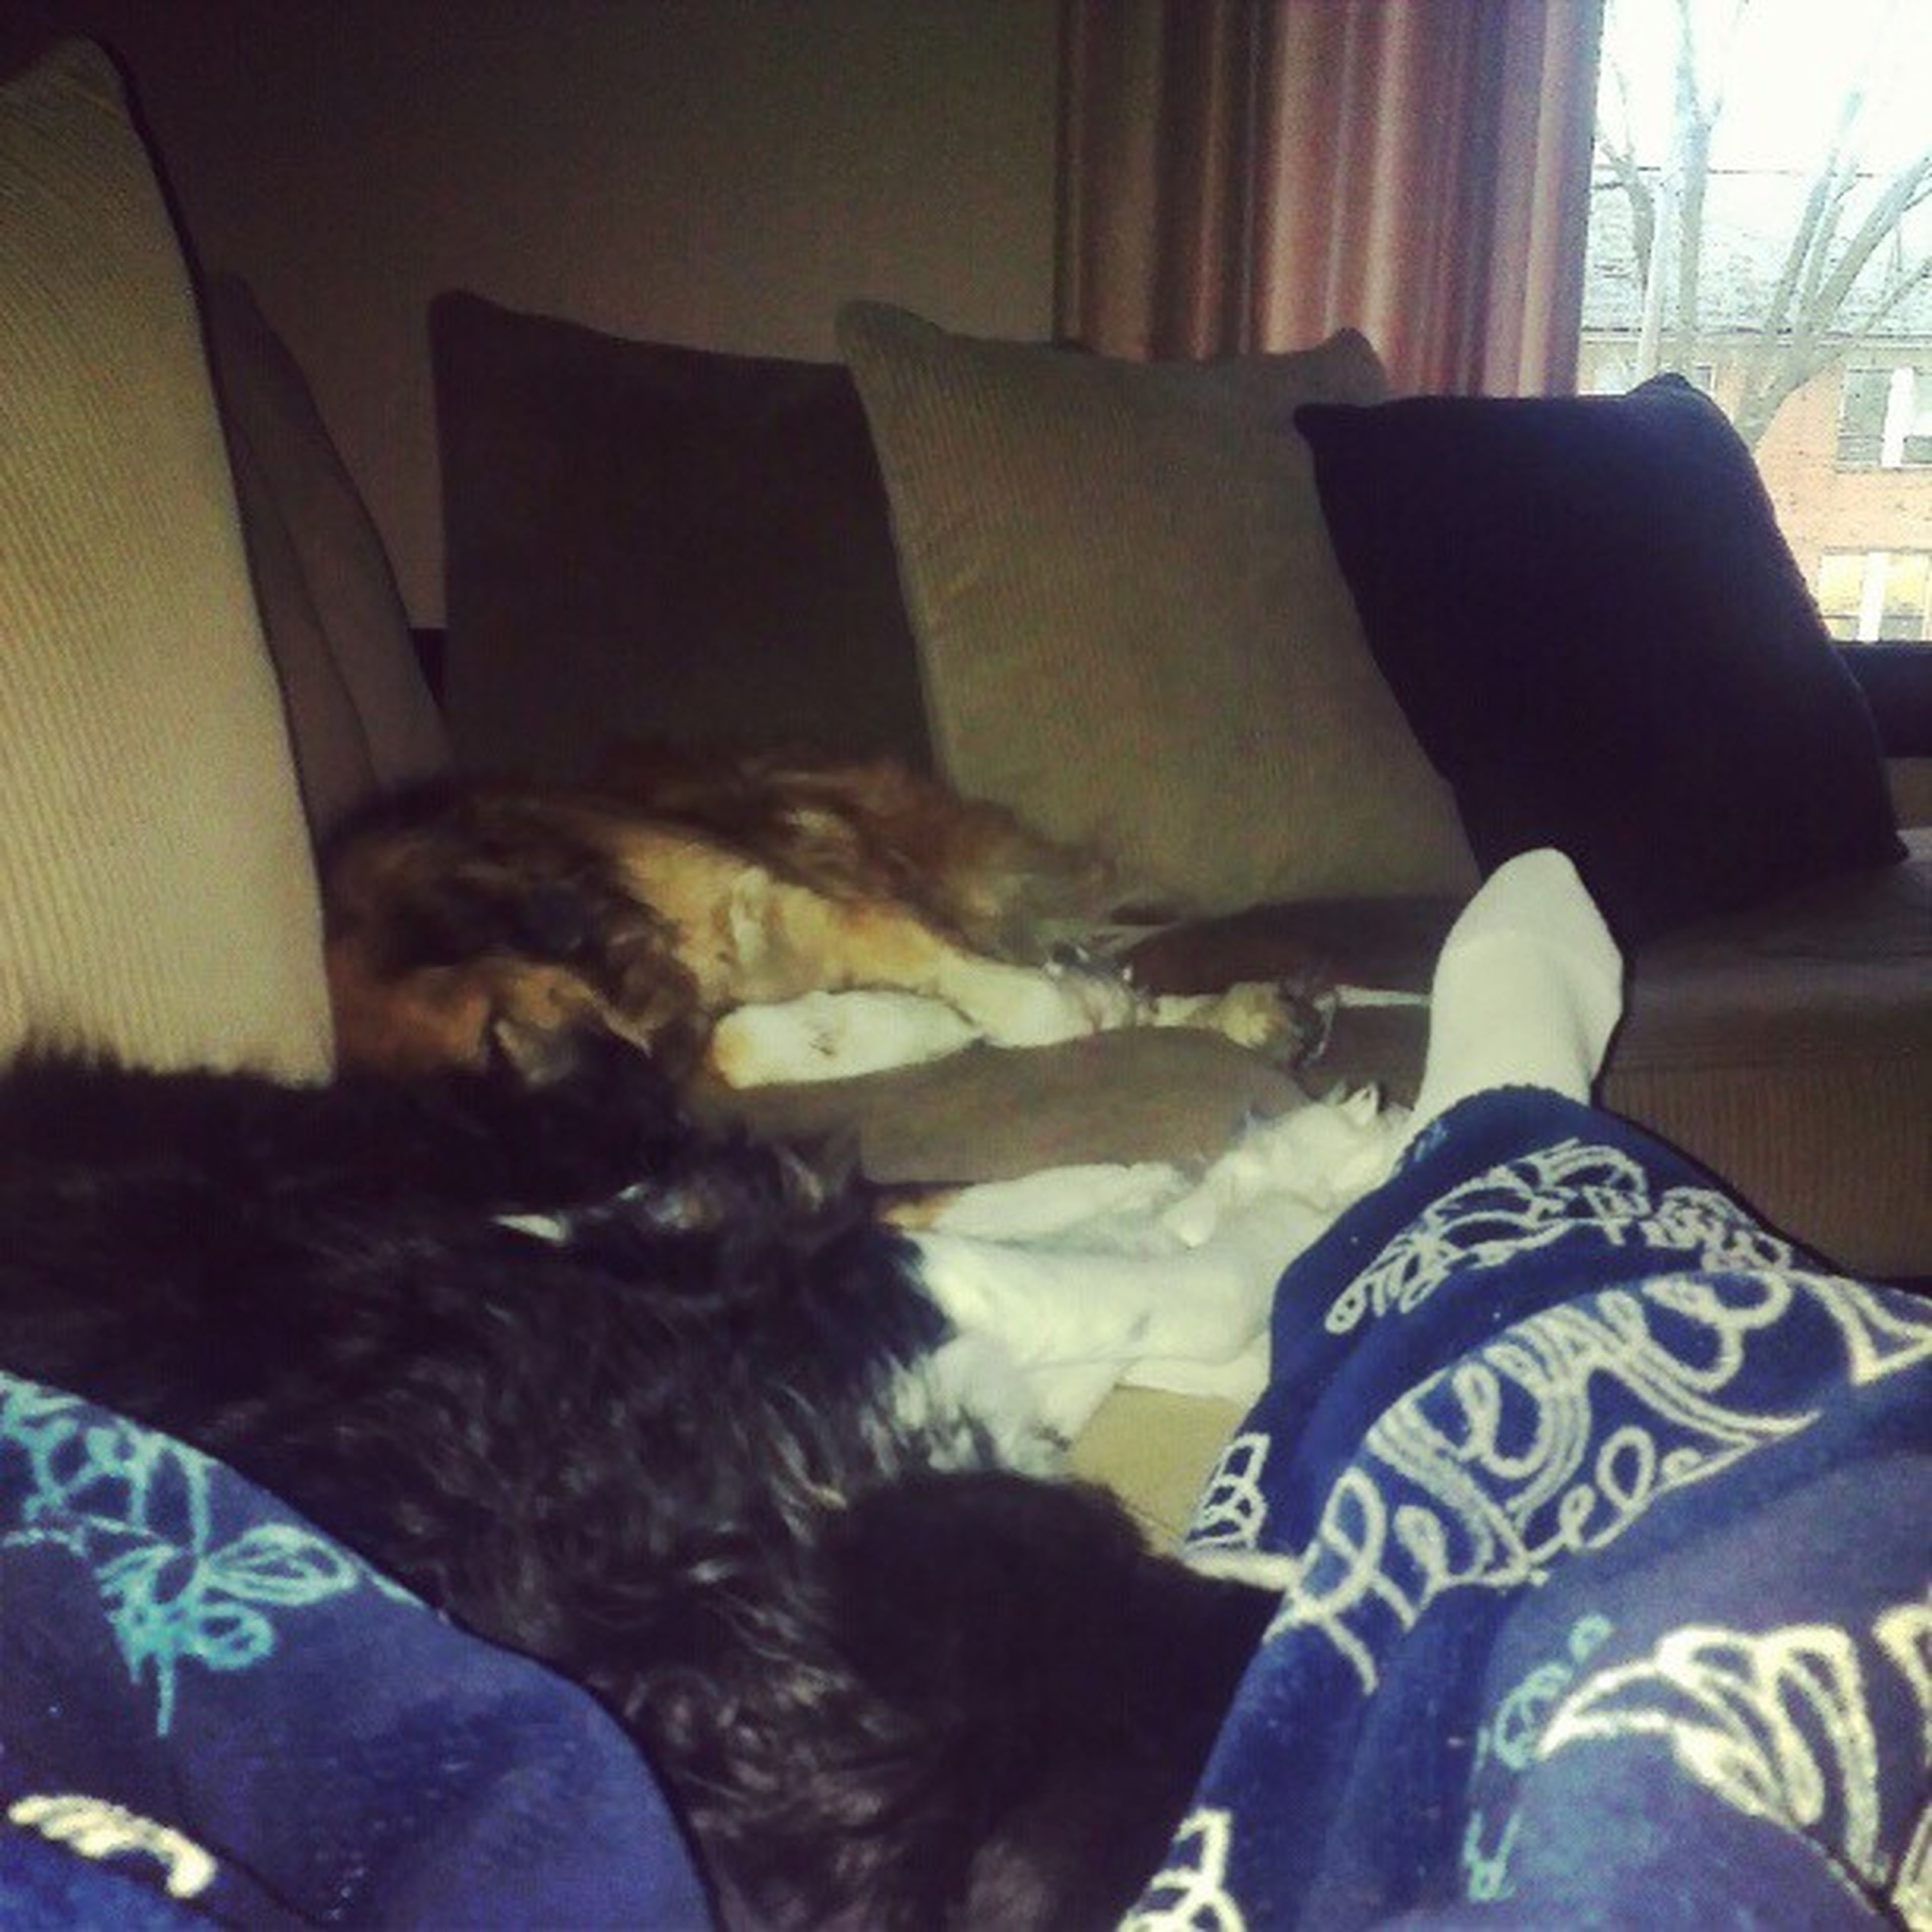 indoors, bed, relaxation, resting, bedroom, sofa, lying down, home interior, sleeping, comfortable, domestic animals, pillow, pets, sitting, blanket, dog, one animal, animal themes